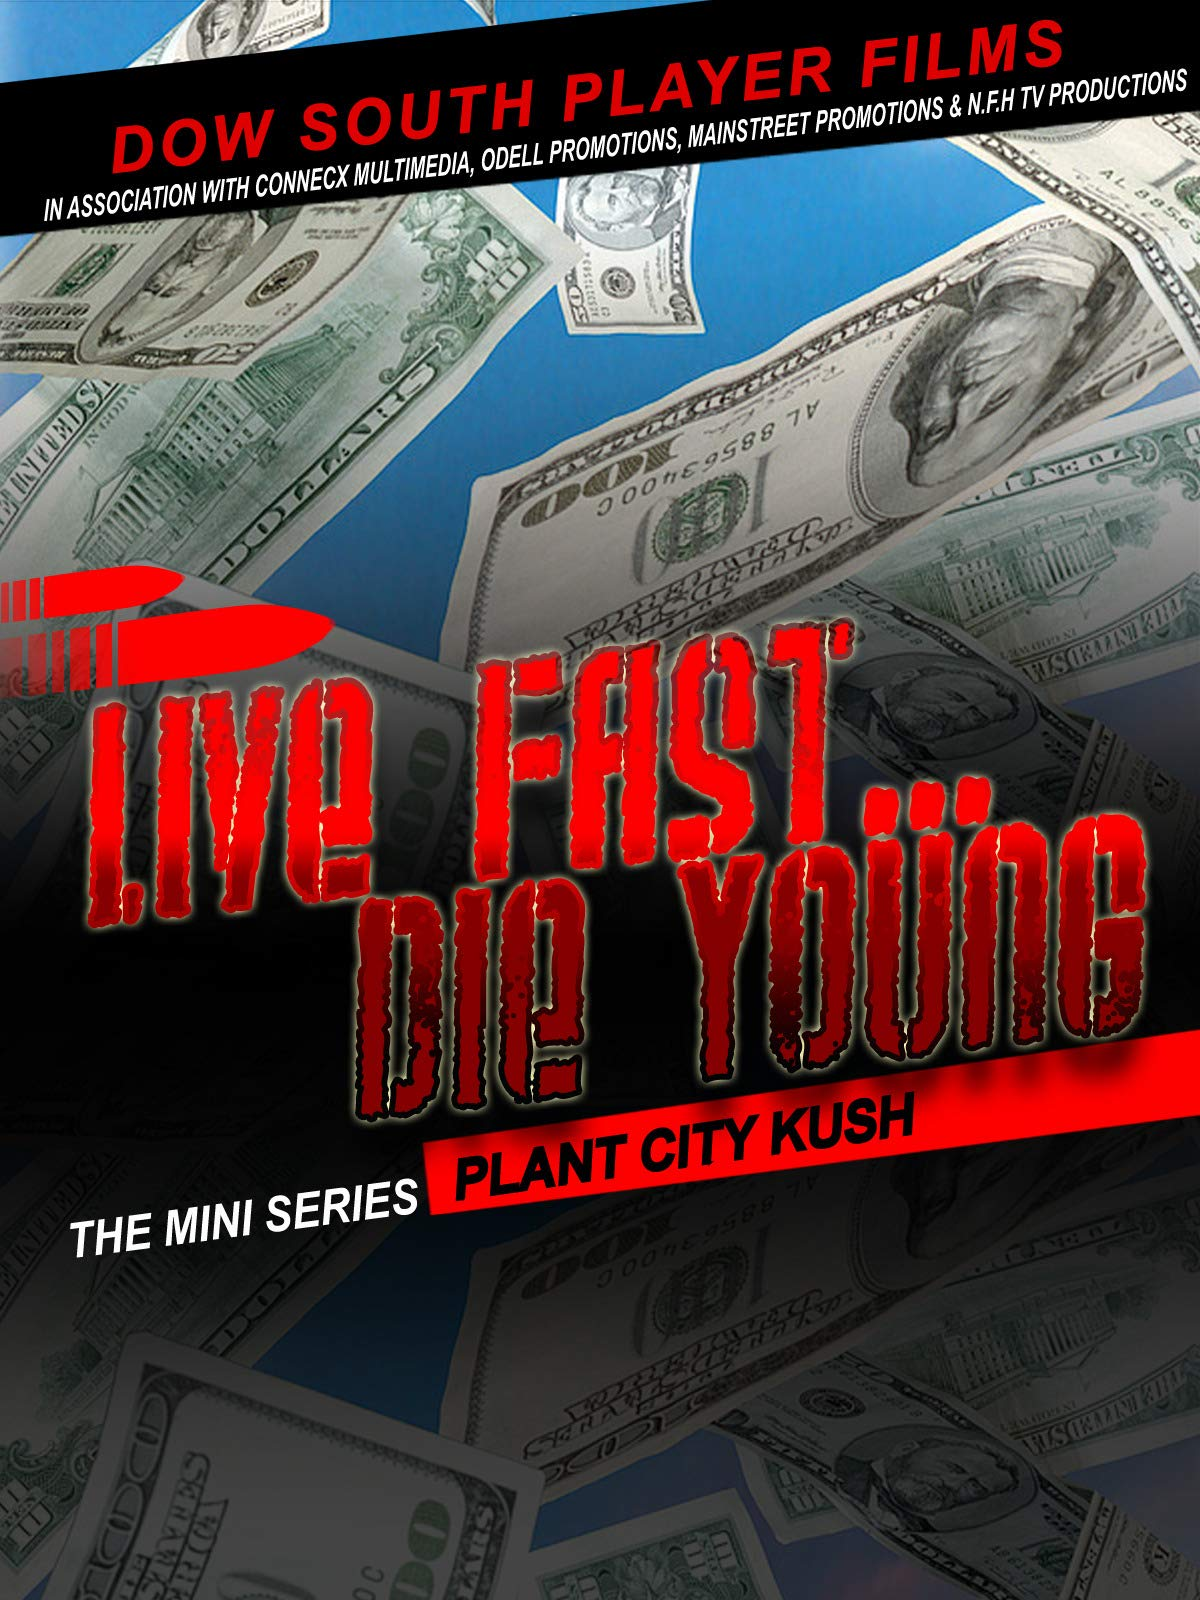 Live Fast Die Young Plant City Kush